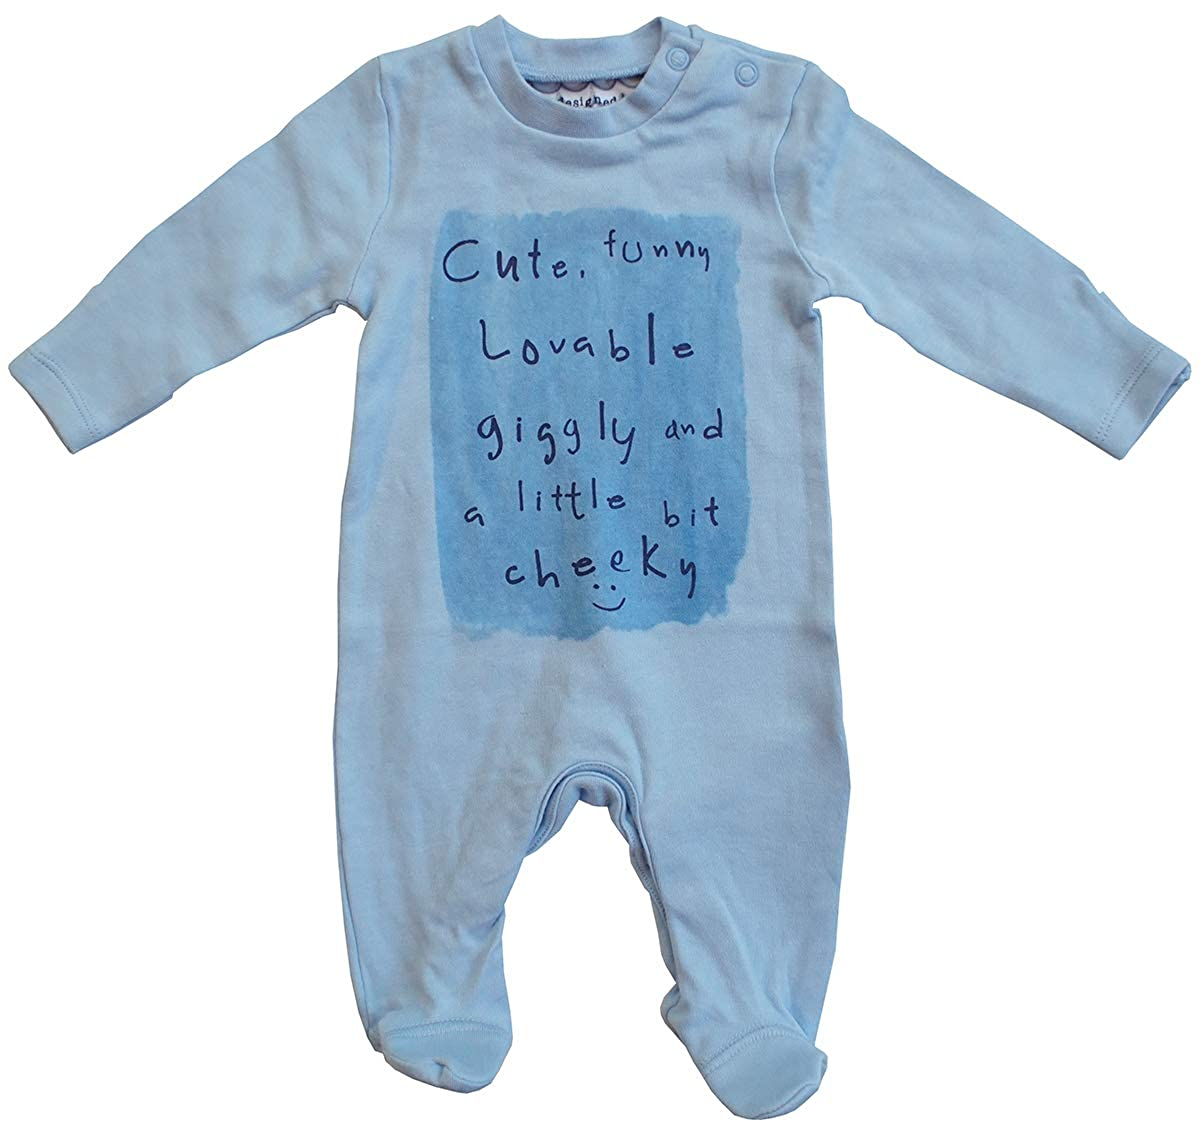 Get Wivvit Boys Baby Funny Cute Cheeky Sleepsuit Romper Prem Sizes from Tiny Newborn to 18 Months